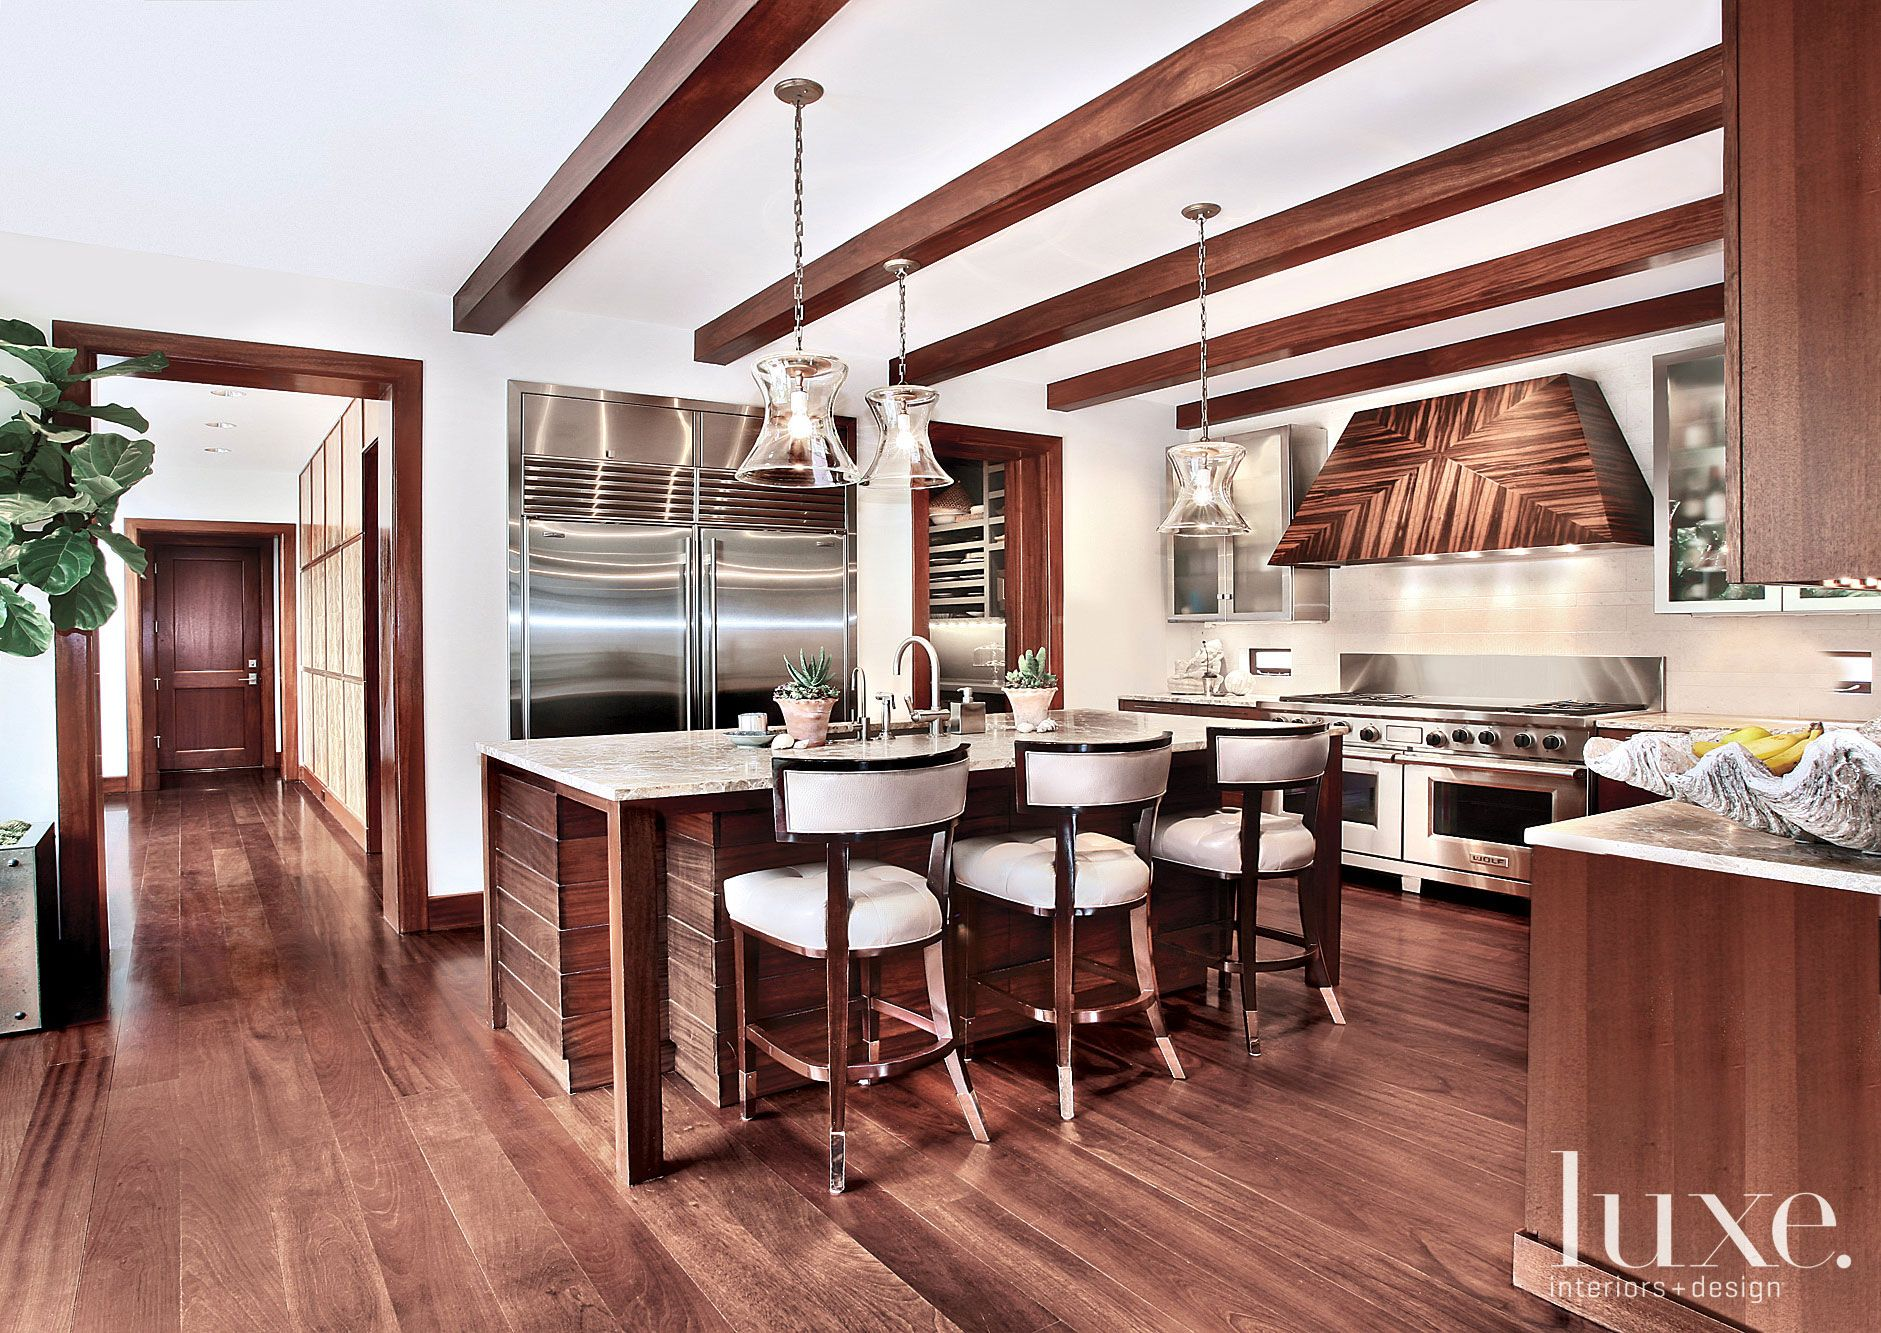 Contemporary White Kitchen with Exposed Wood Beams